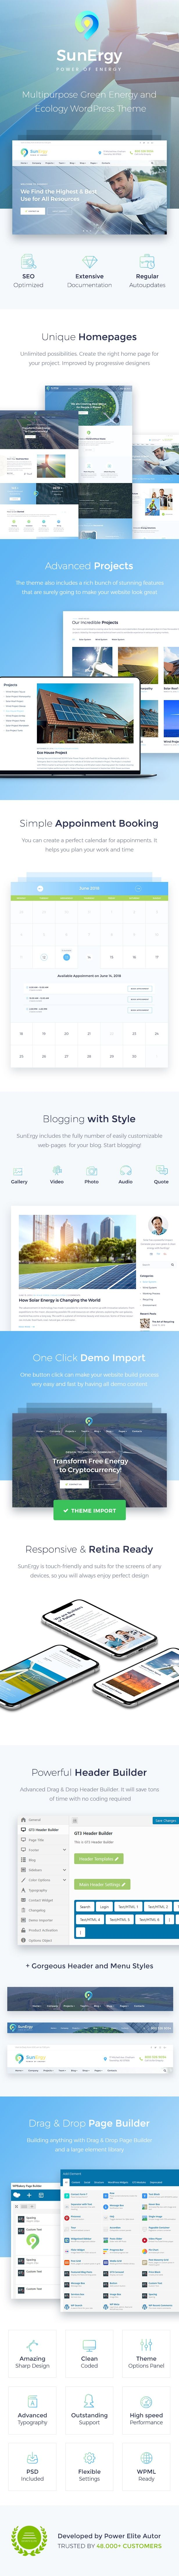 Sunergy – Multipurpose Green Energy and Ecology WordPress Theme #Green, #Multipurpose, #Sunergy, #Energy